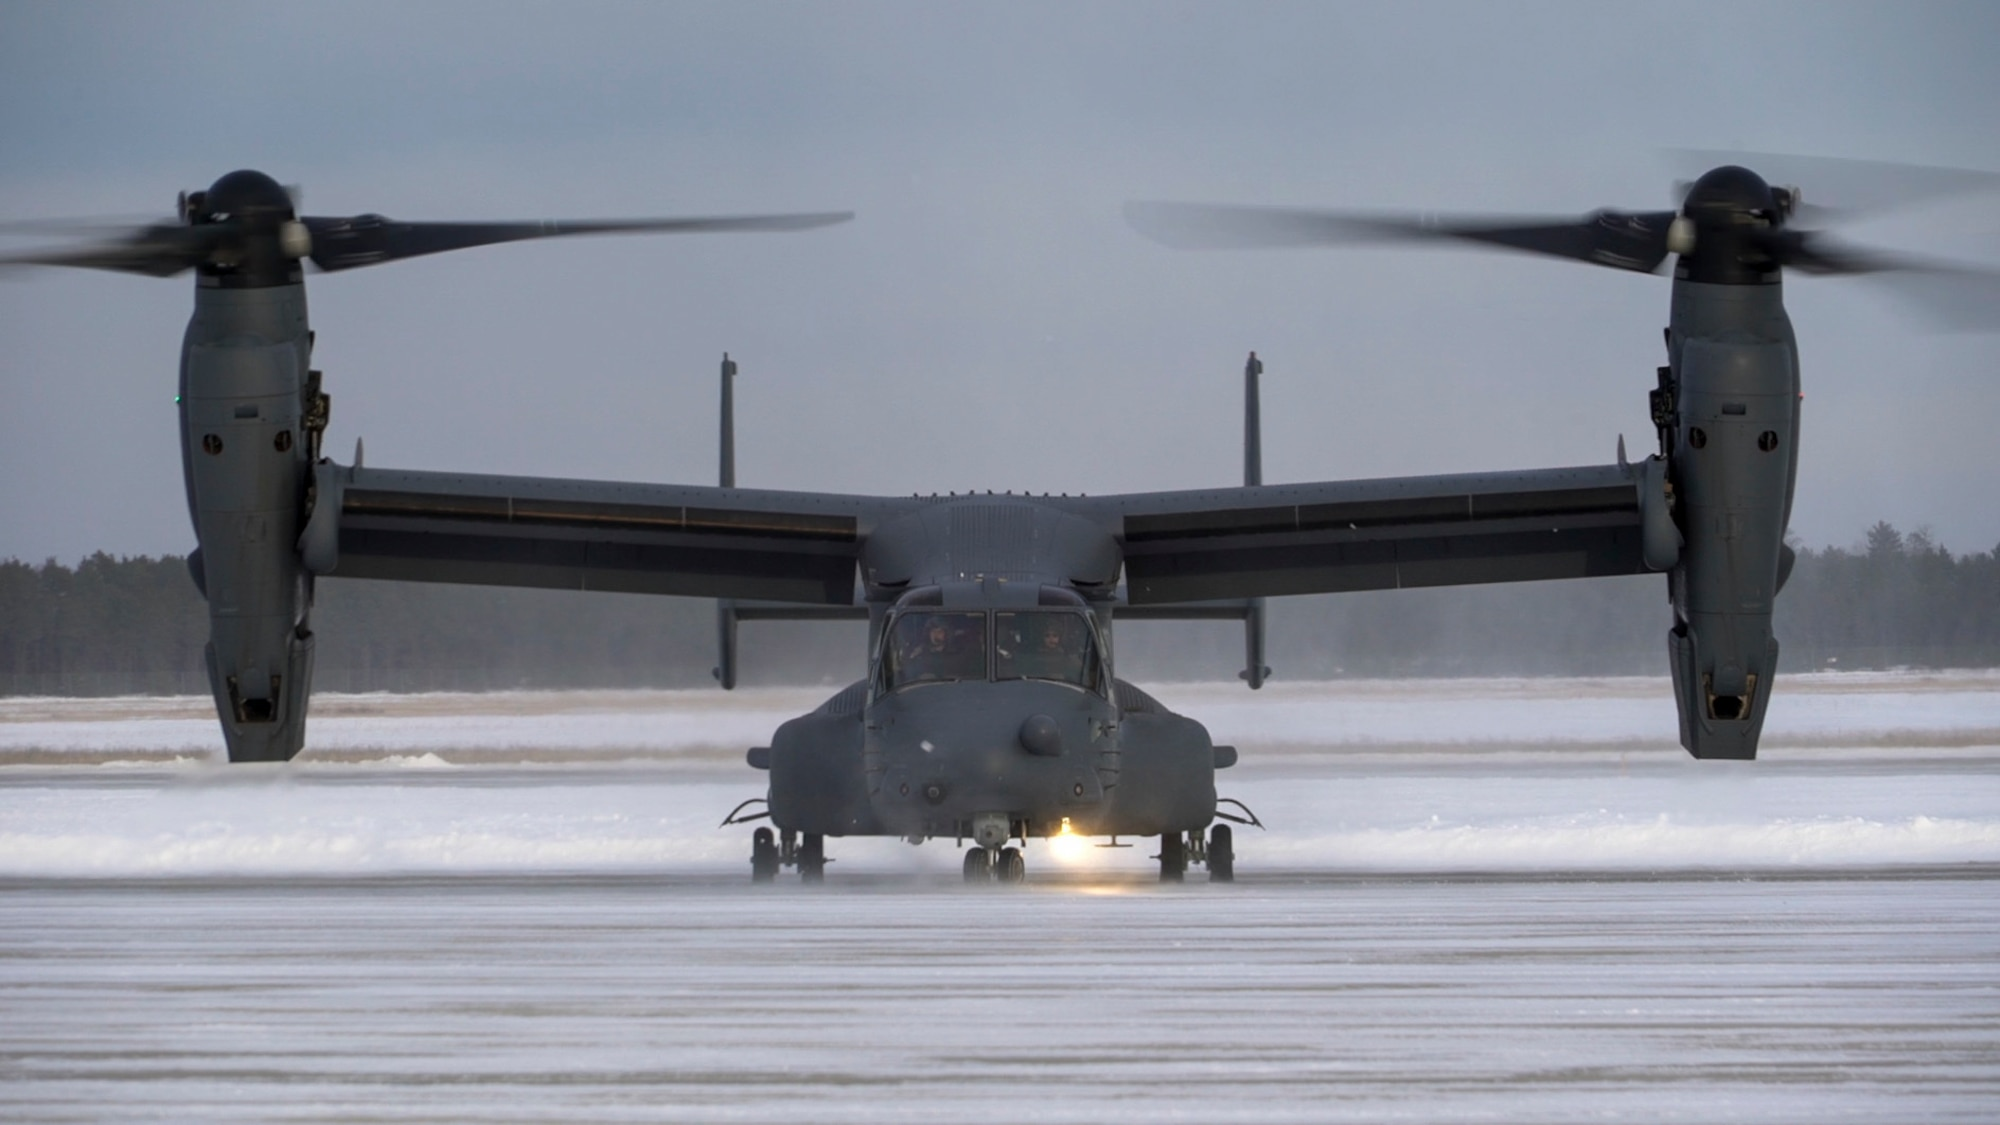 A CV-22 Osprey lands at Alpena Combat Readiness Training Center, Mich., Jan. 21, 2020 during exercise Emerald Warrior. Emerald Warrior 20-1 provides annual, realistic pre-deployment training encompassing multiple joint operating areas to prepare special operations forces, conventional force enablers, partner nations and interagency elements to integrate with, and execute full spectrum special operations in an arctic climate, sharpening U.S. forces' abilities to operate around the globe. (U.S. Air Force photo by Airman 1st Class Victoria Hadden)